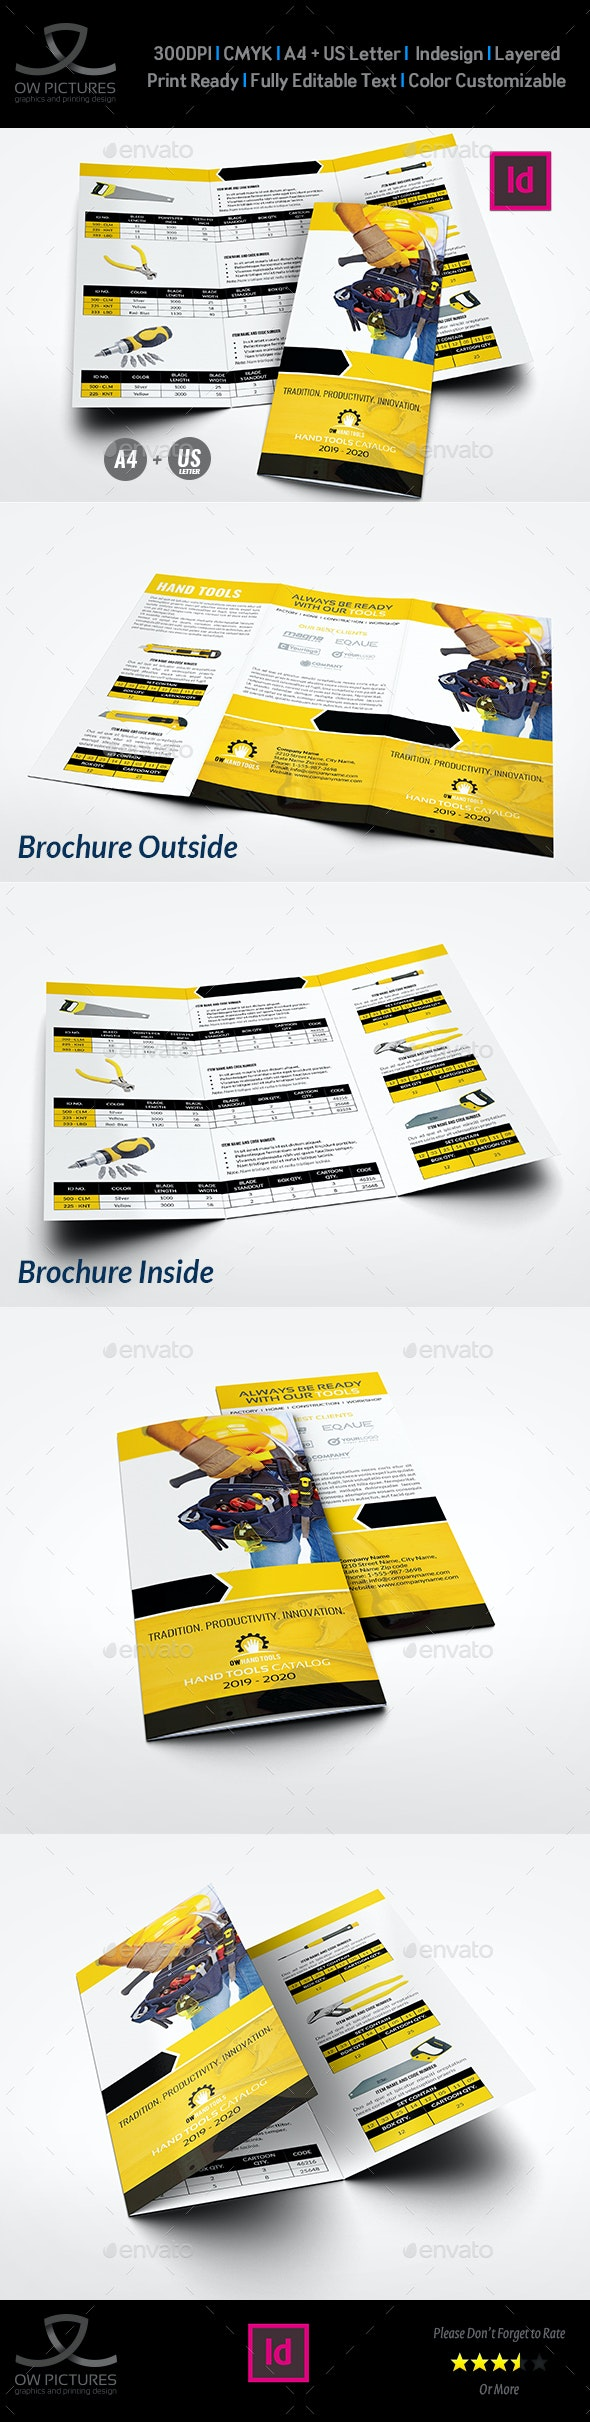 Hand Tools Products Catalog Tri-Fold Brochure Template - Catalogs Brochures